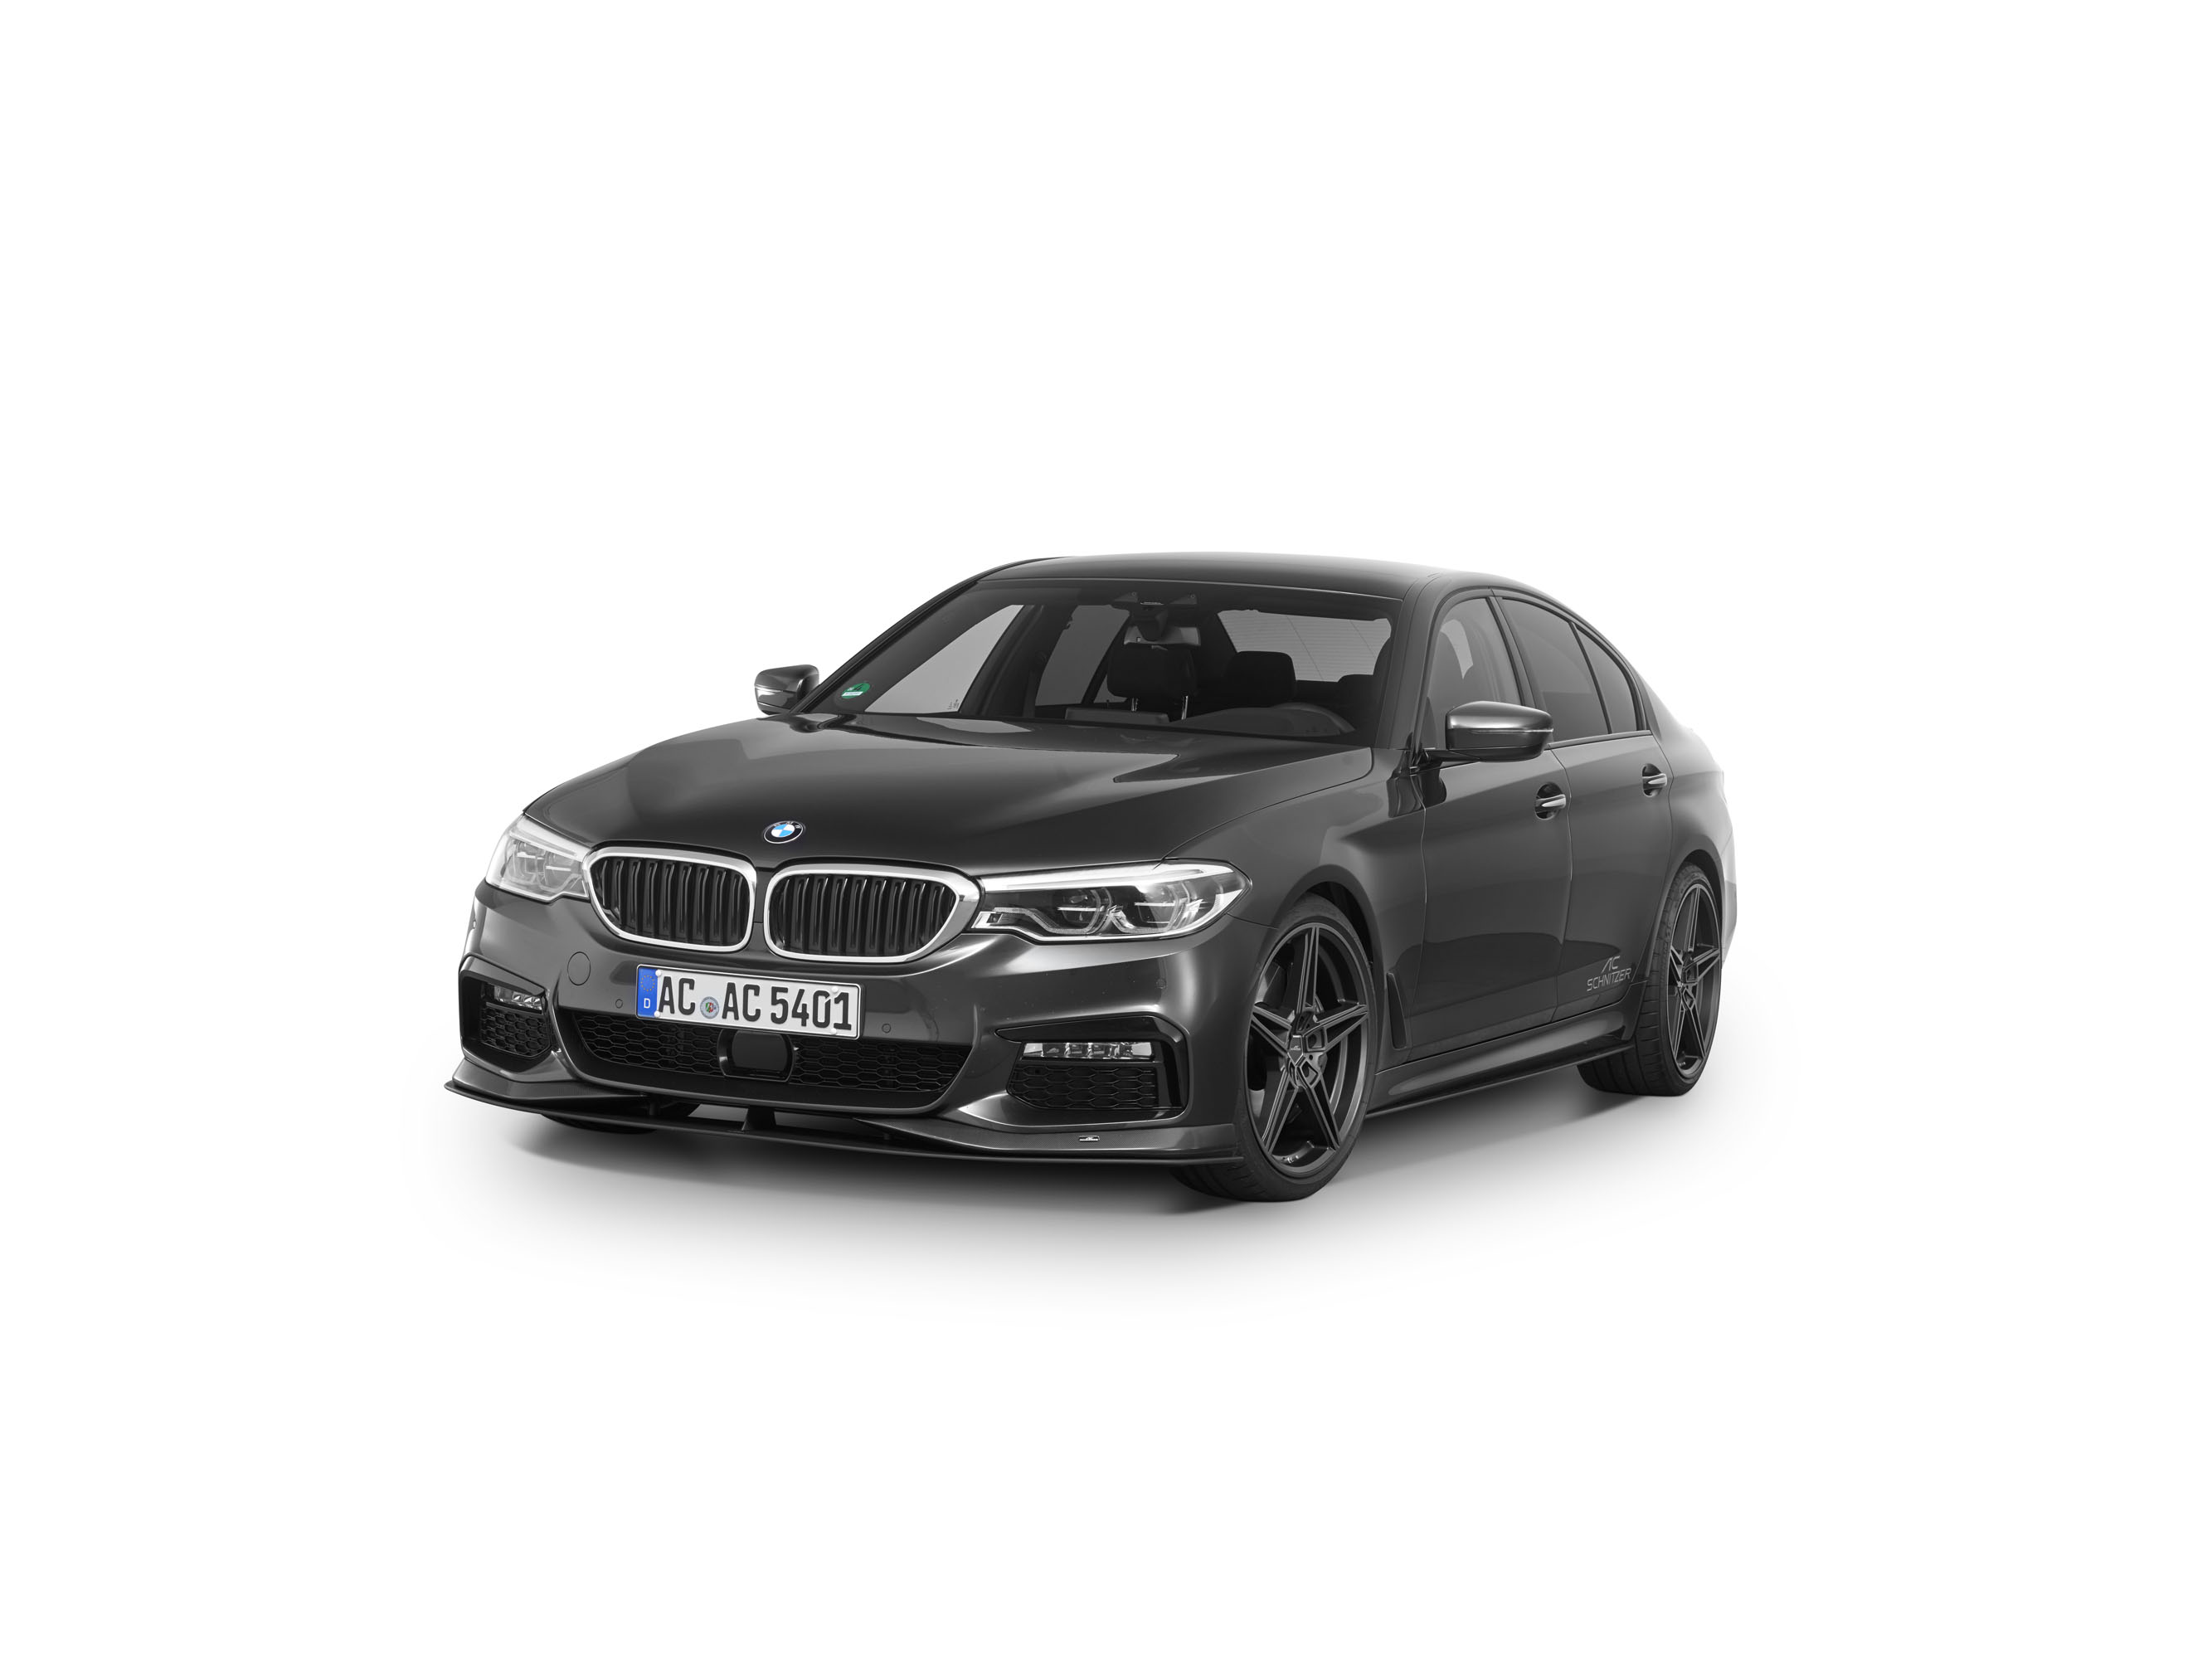 BMW 5 series G30 and G31 photo #1